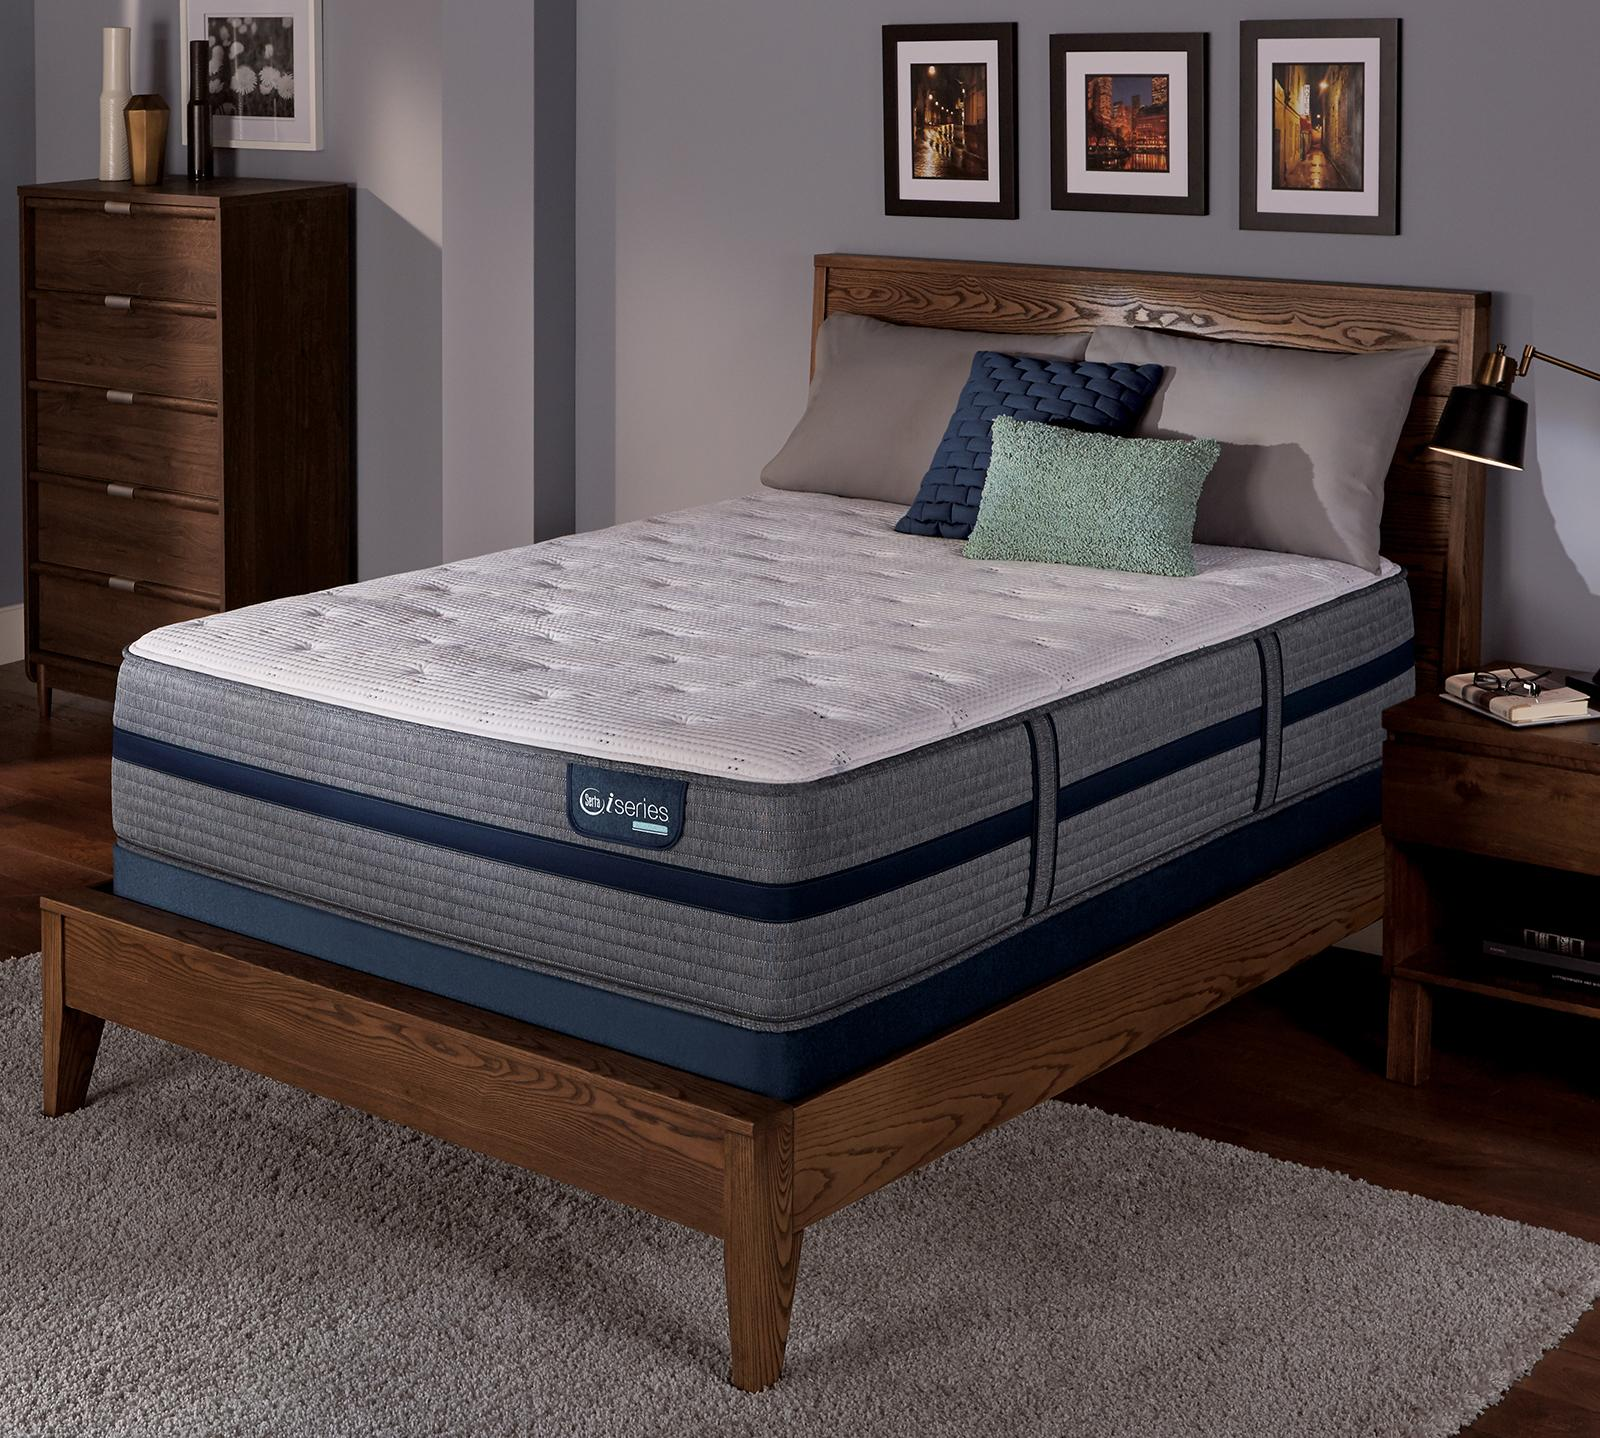 iSeries Hybrid 500 14 Inch Cushion Firm Mattress